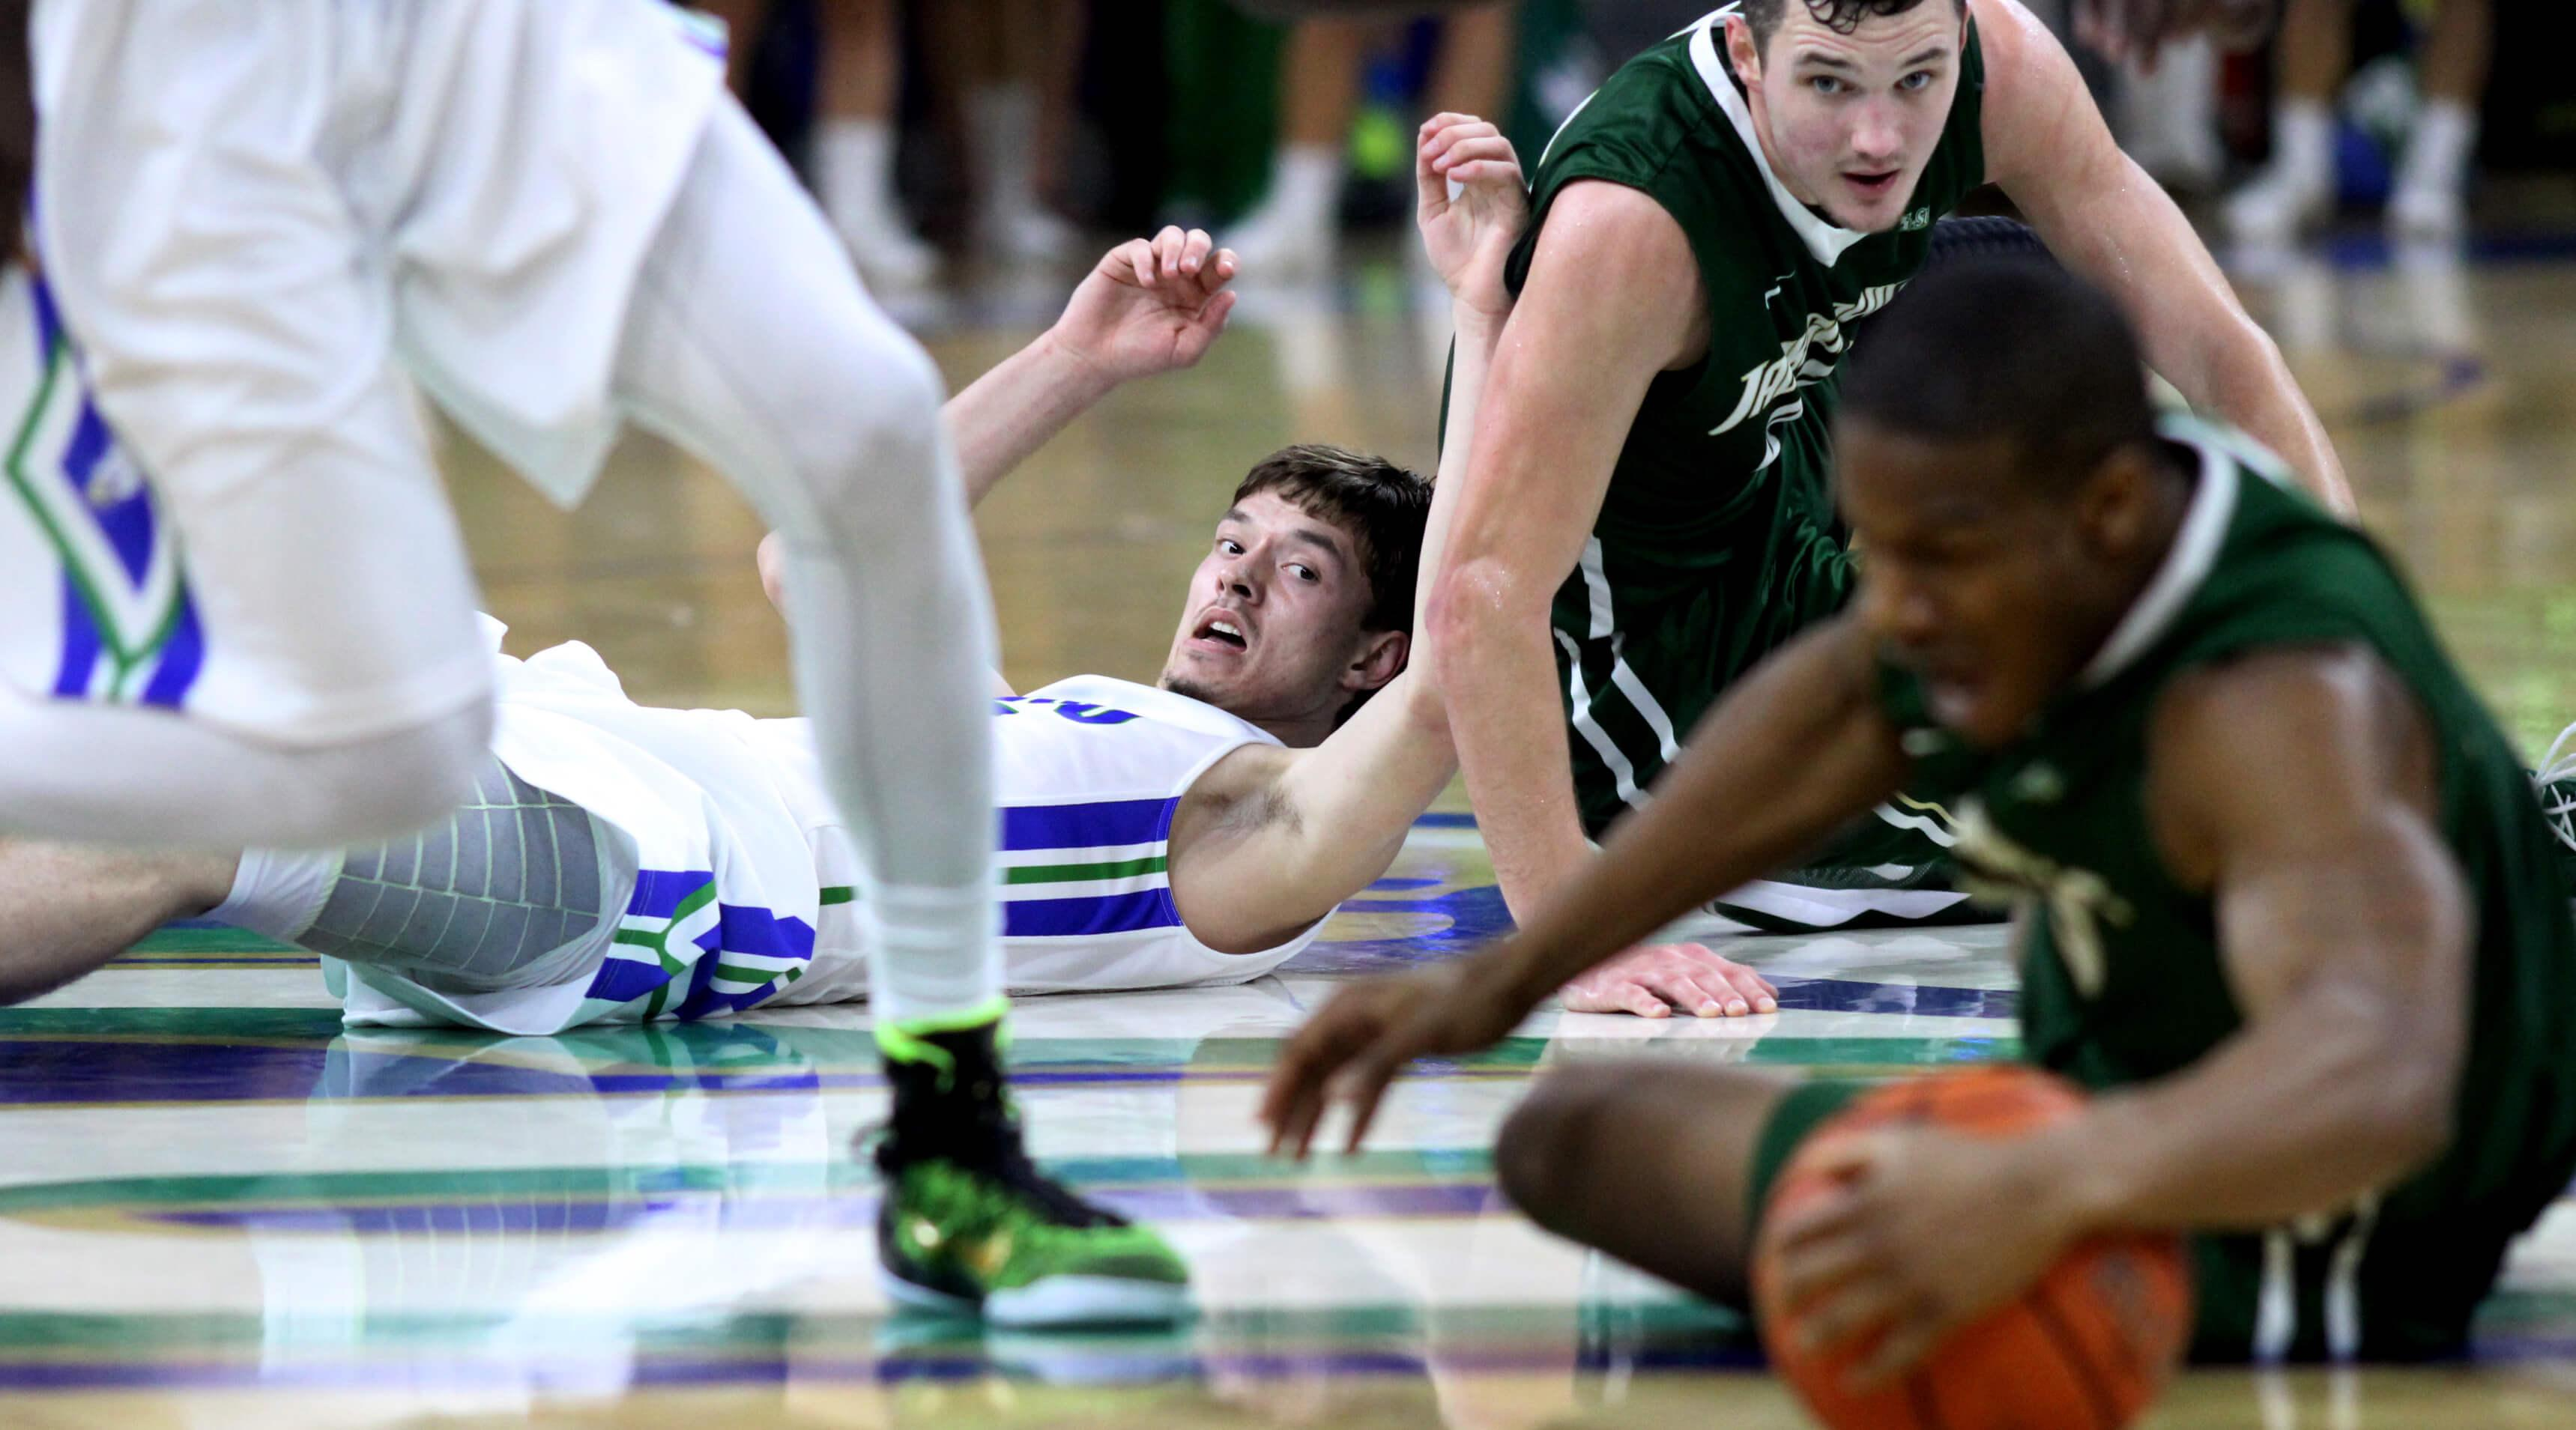 FGCU enters tournament as the hunters, not the hunted